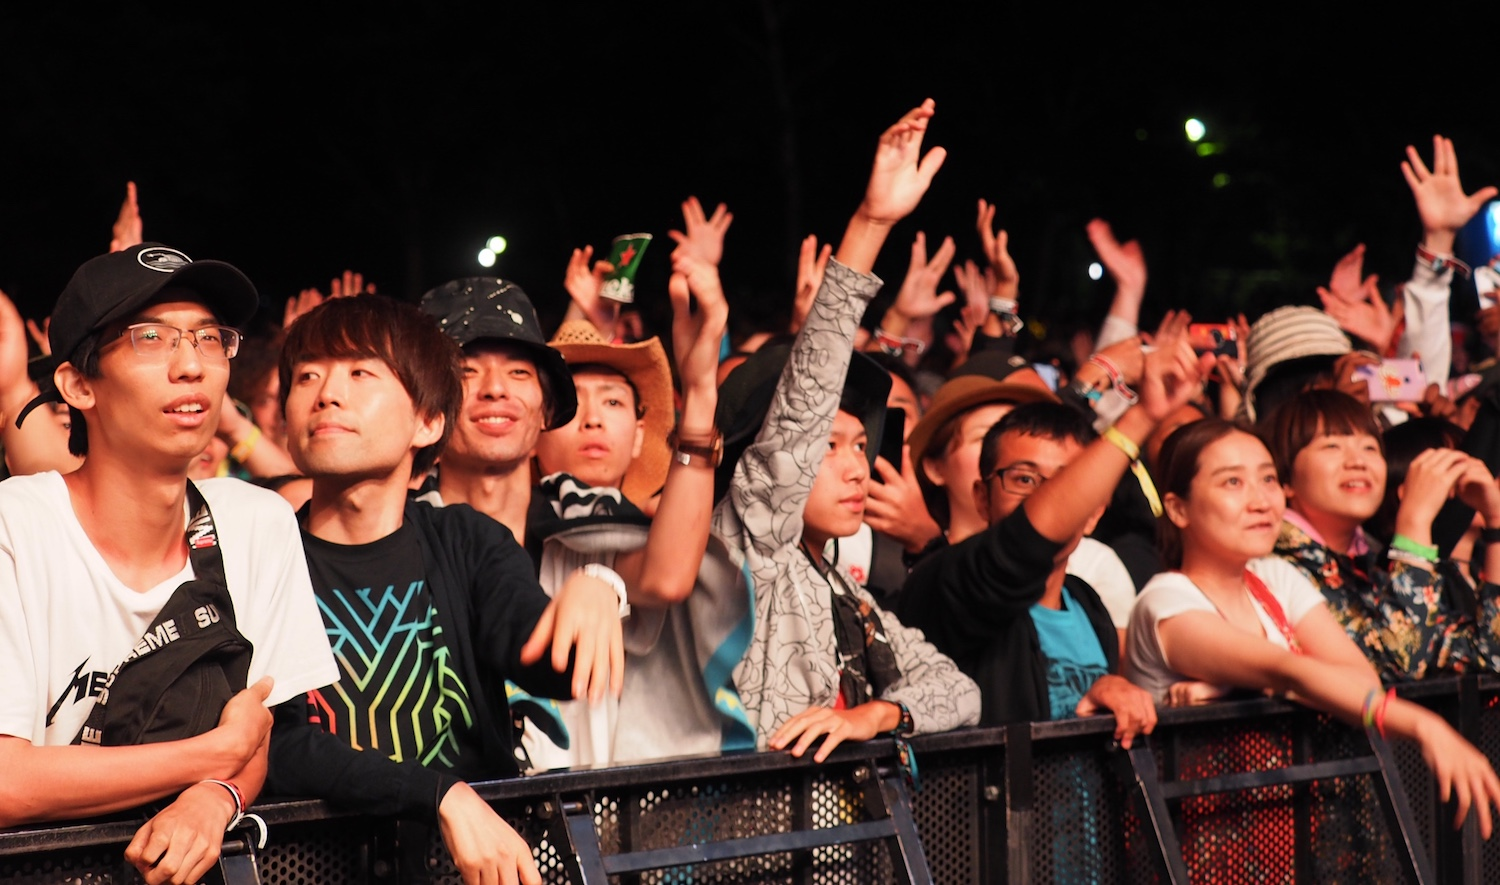 Fuji Rock crowd